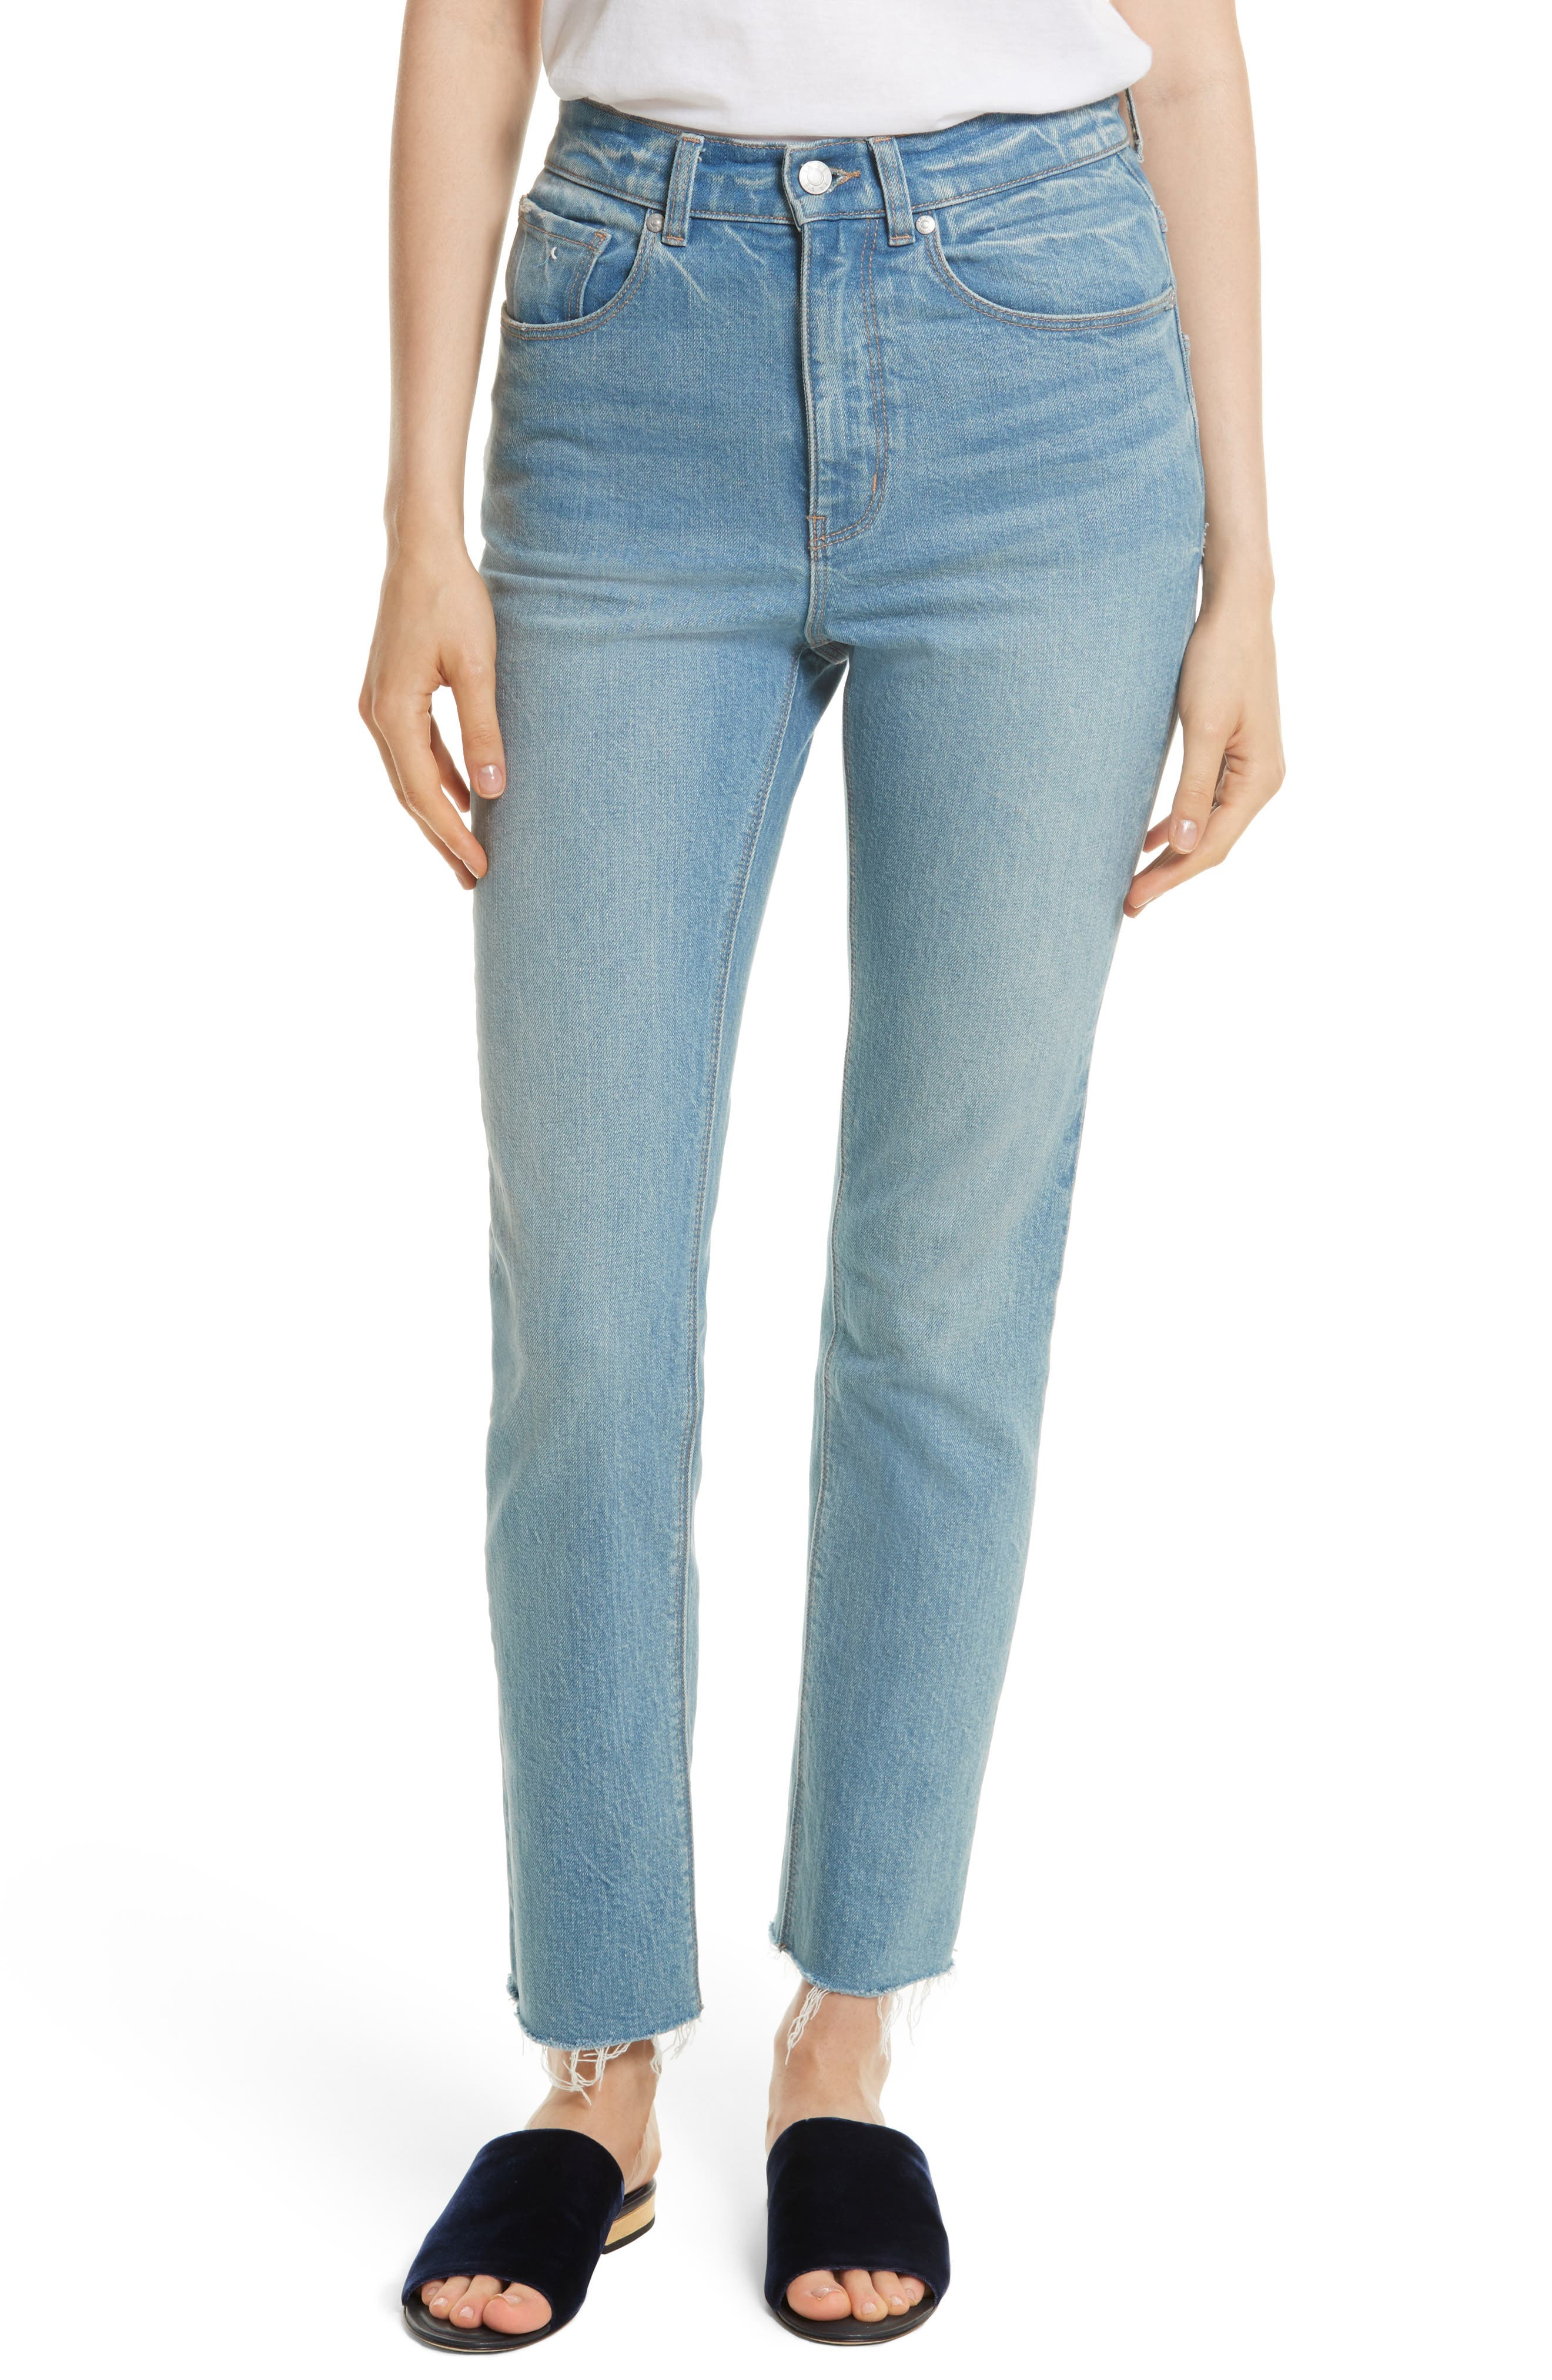 Ines High Waist Ankle Jeans,                         Main,                         color, Bluebell Wash